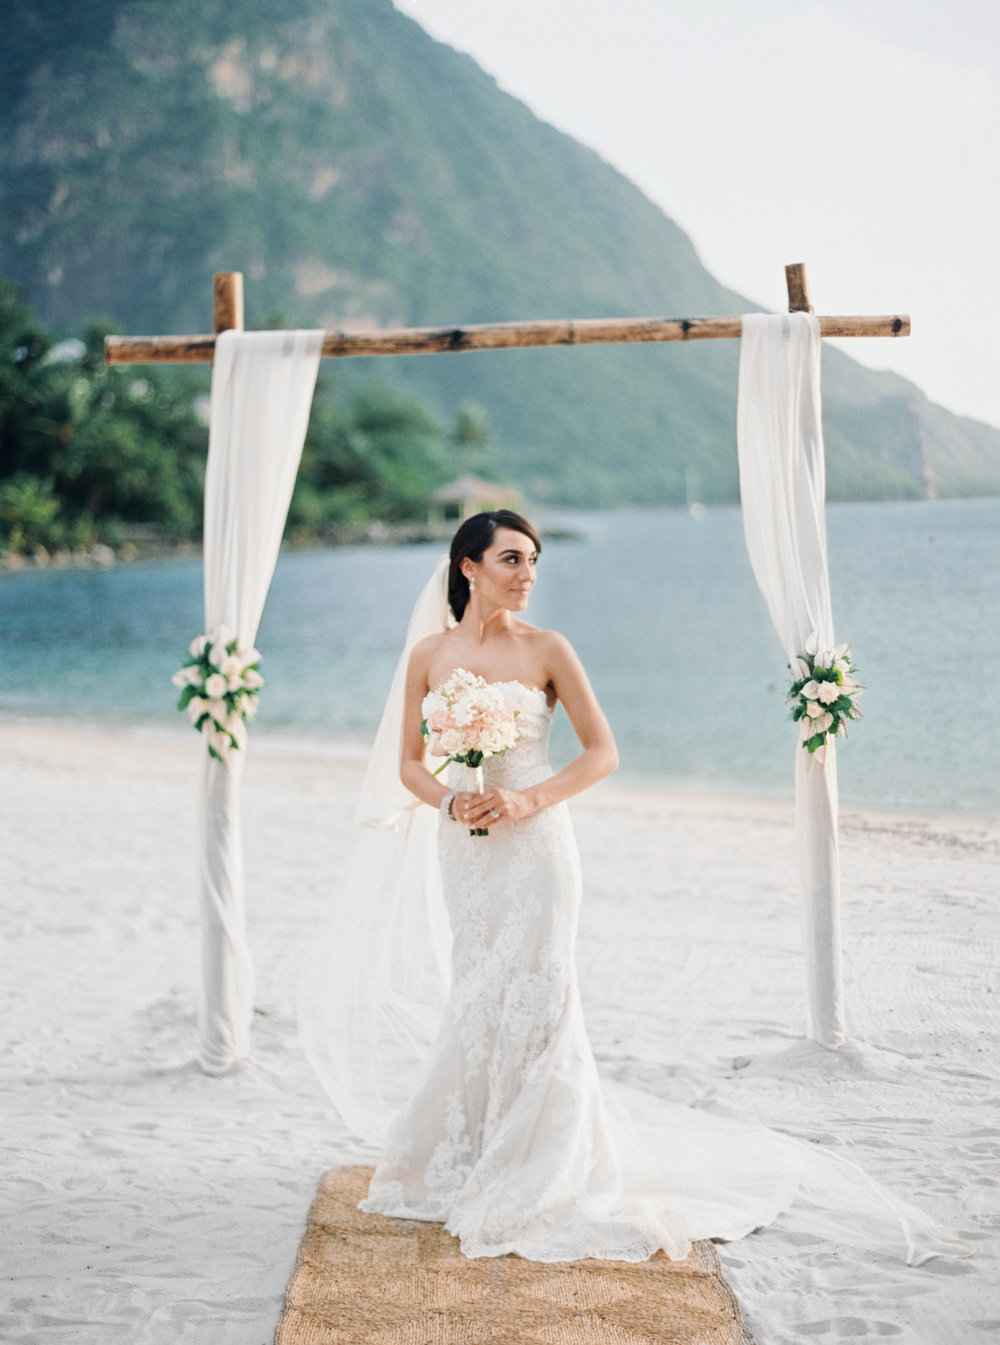 112Delmary's & Daniel : ELOPEMENT : ST. LUCIA : CARIBBEAN : PHOTO & VIDEO : DESTINATION : OUTLIVE CREATIVE : 2016 .jpg